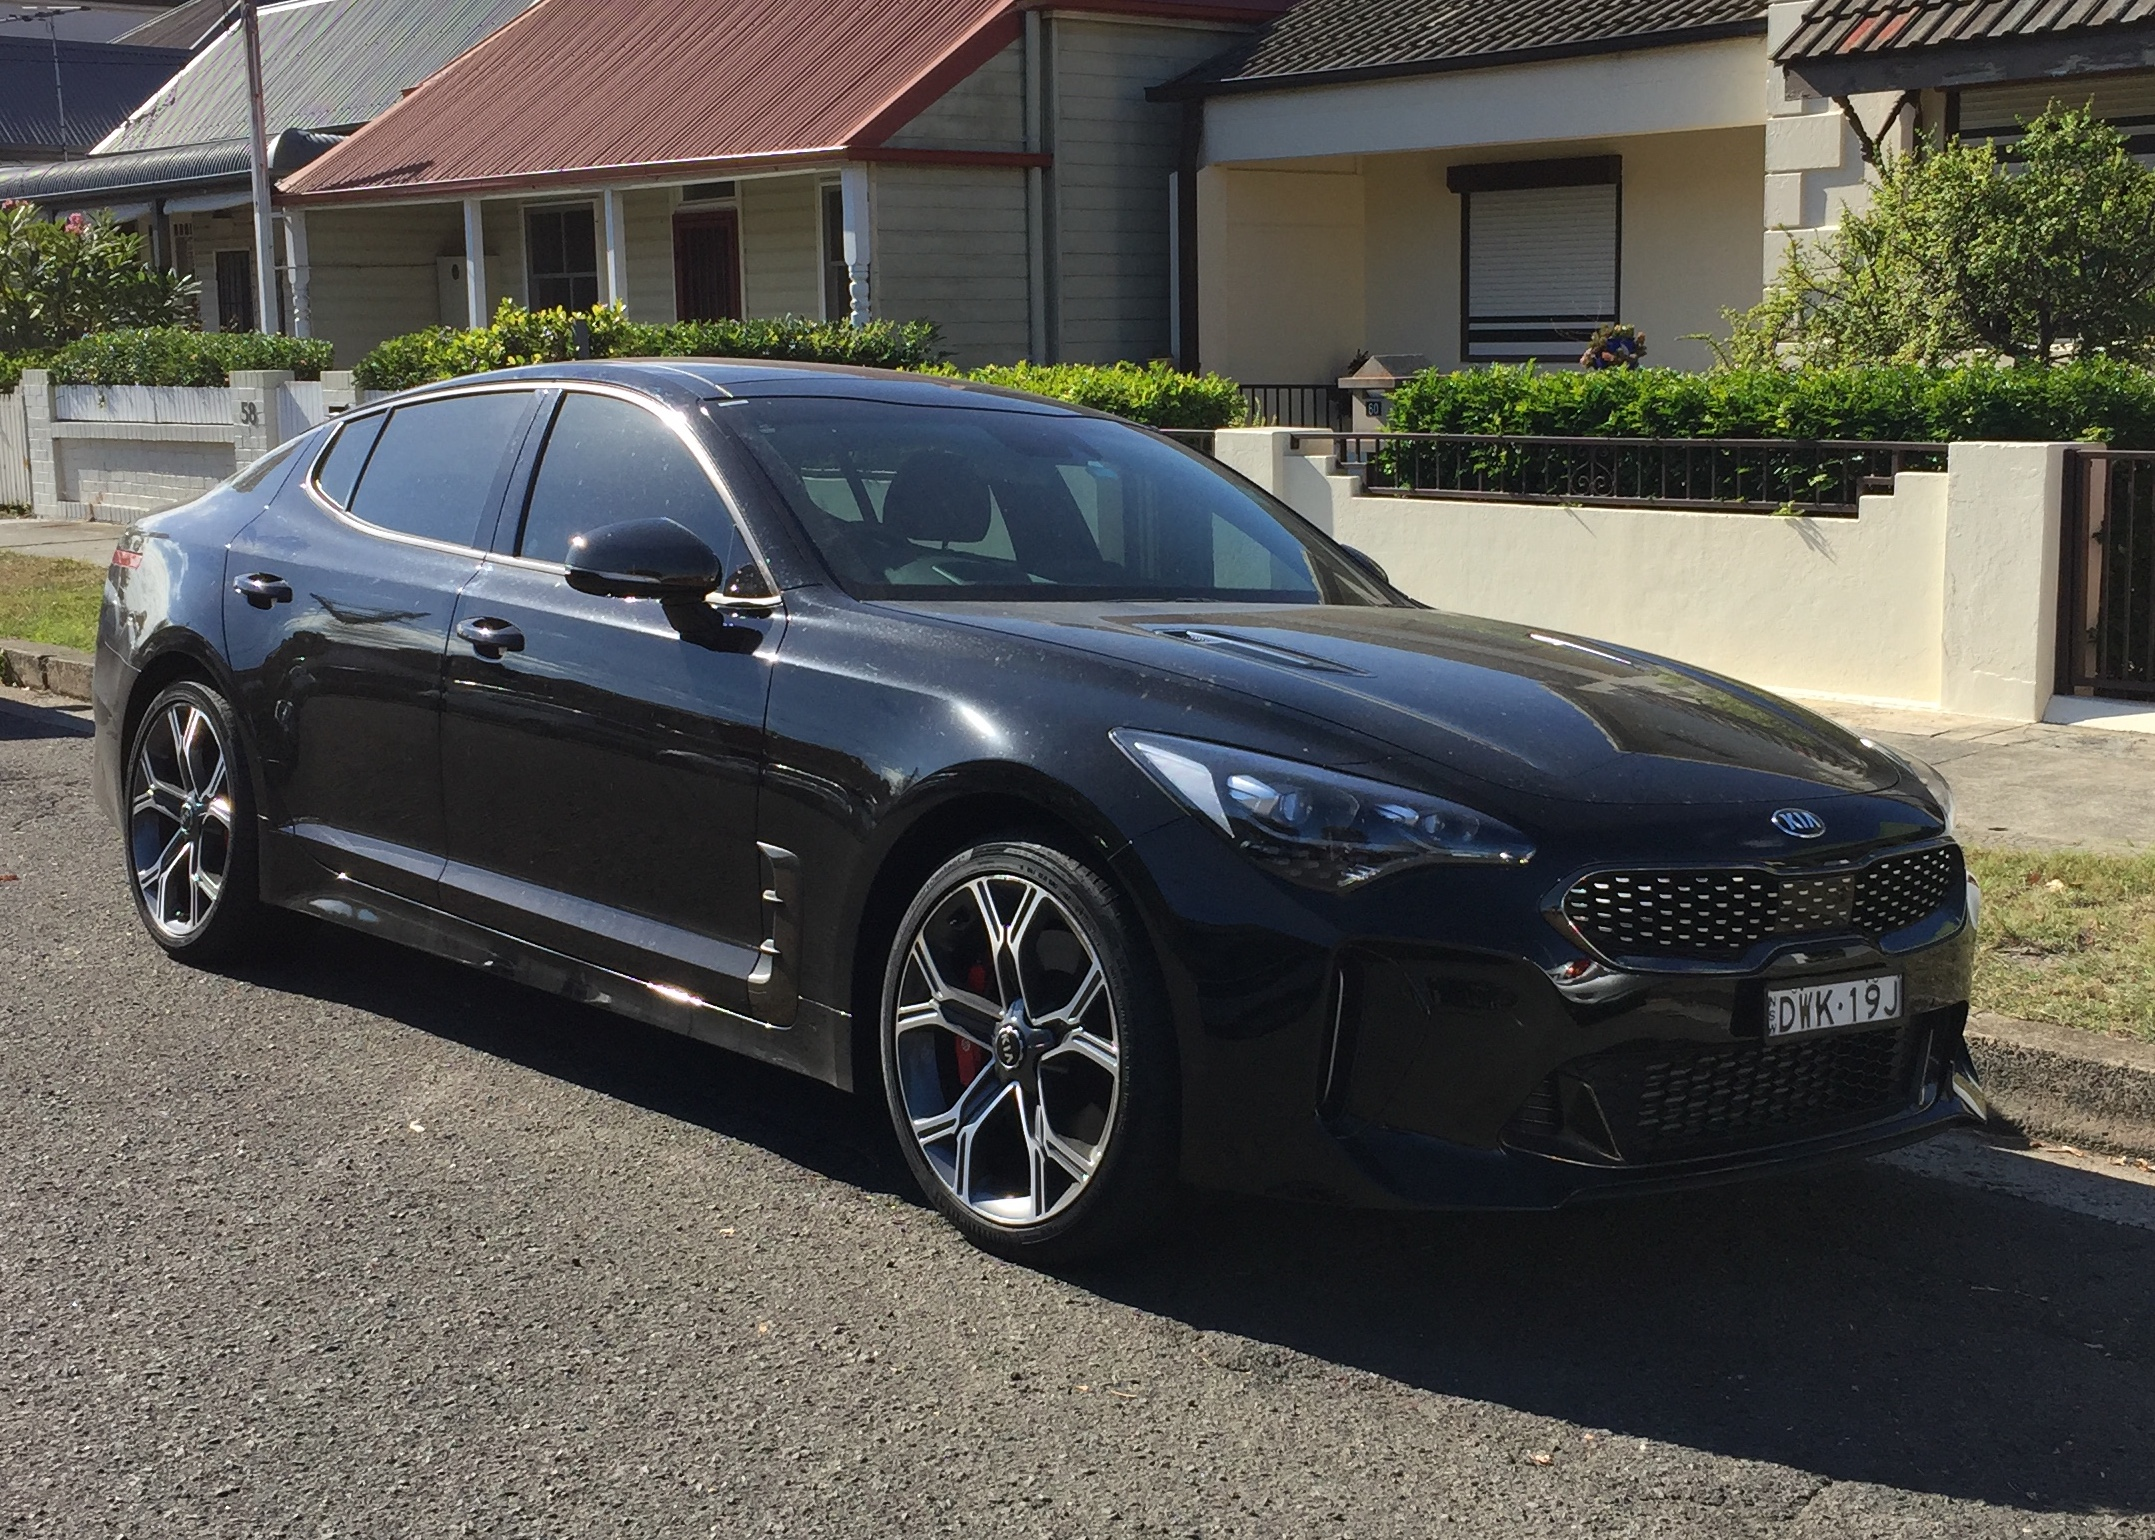 Picture of Reyad's 2018 Kia Stinger GT